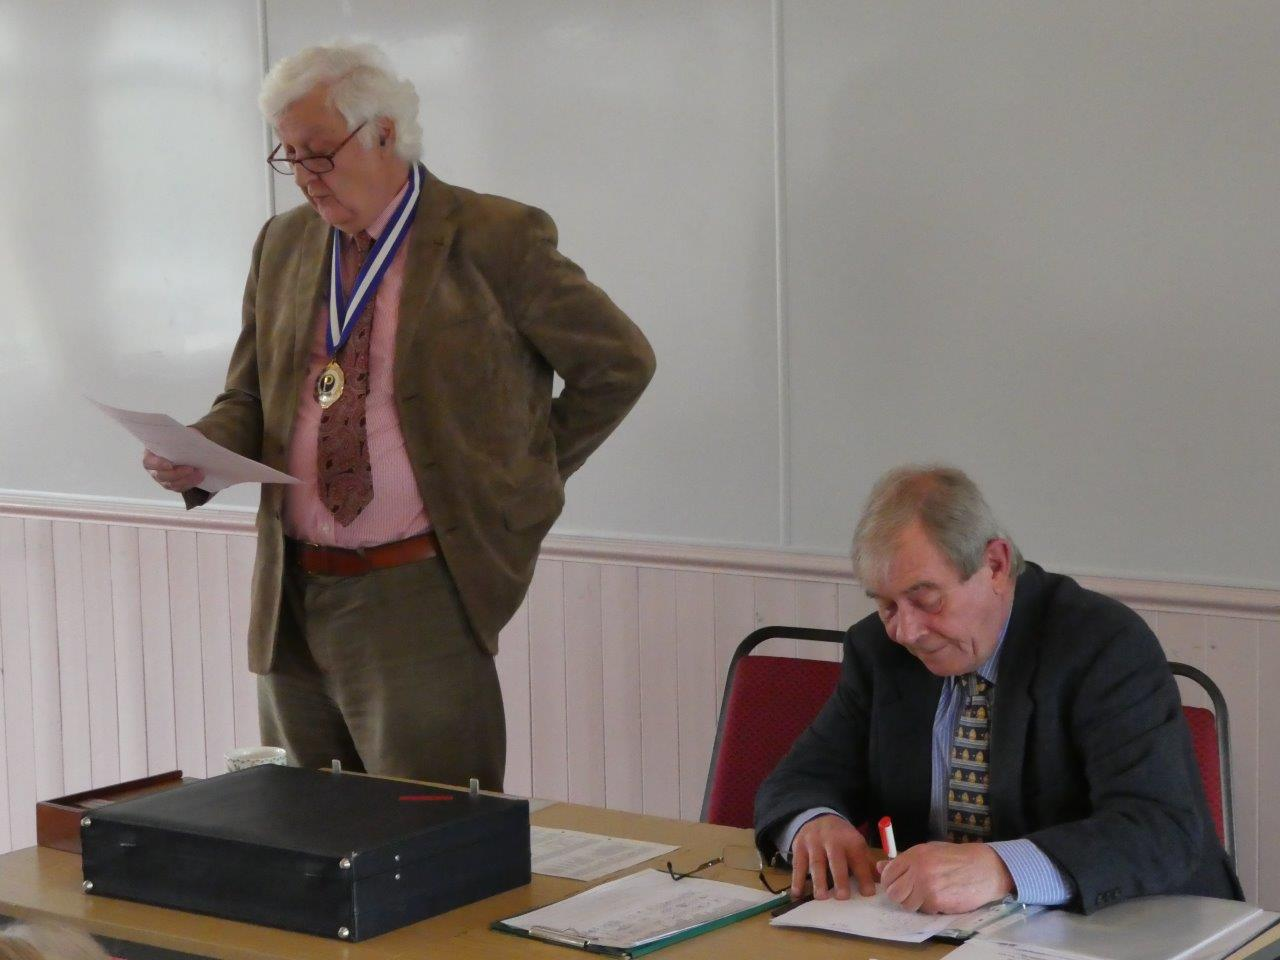 Neil Moore and Chris Stanton preparing for the AGM